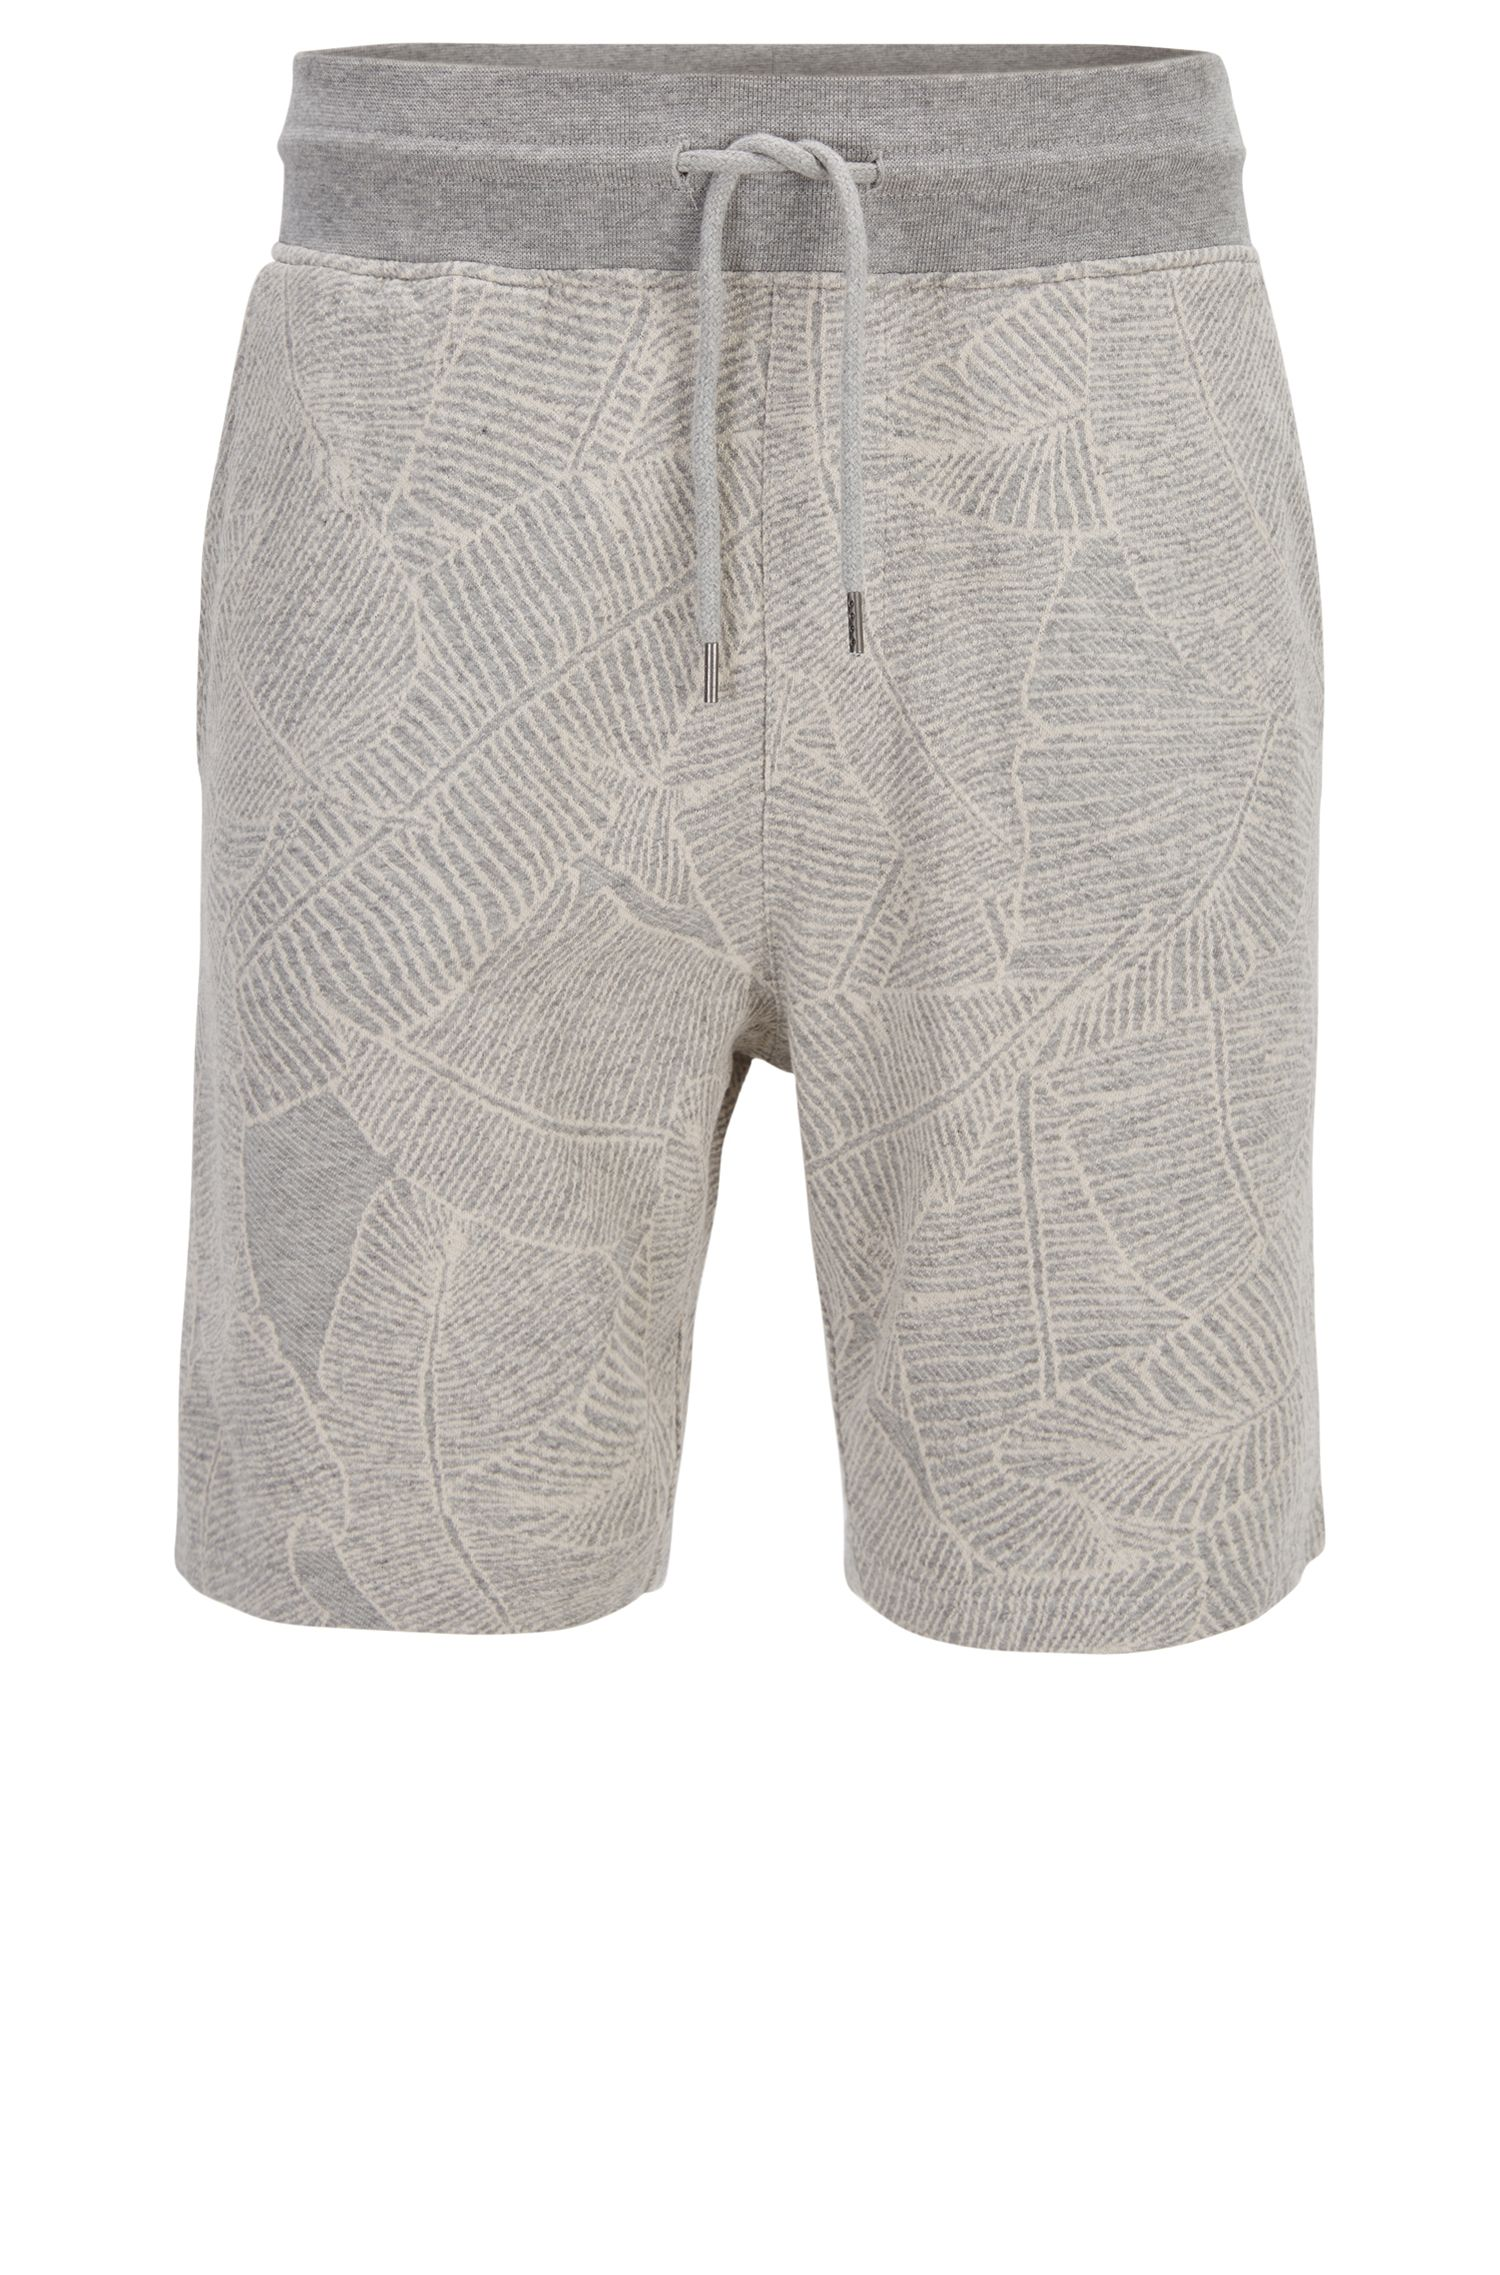 Short à motif en coton molletonné French Terry tissé-teint